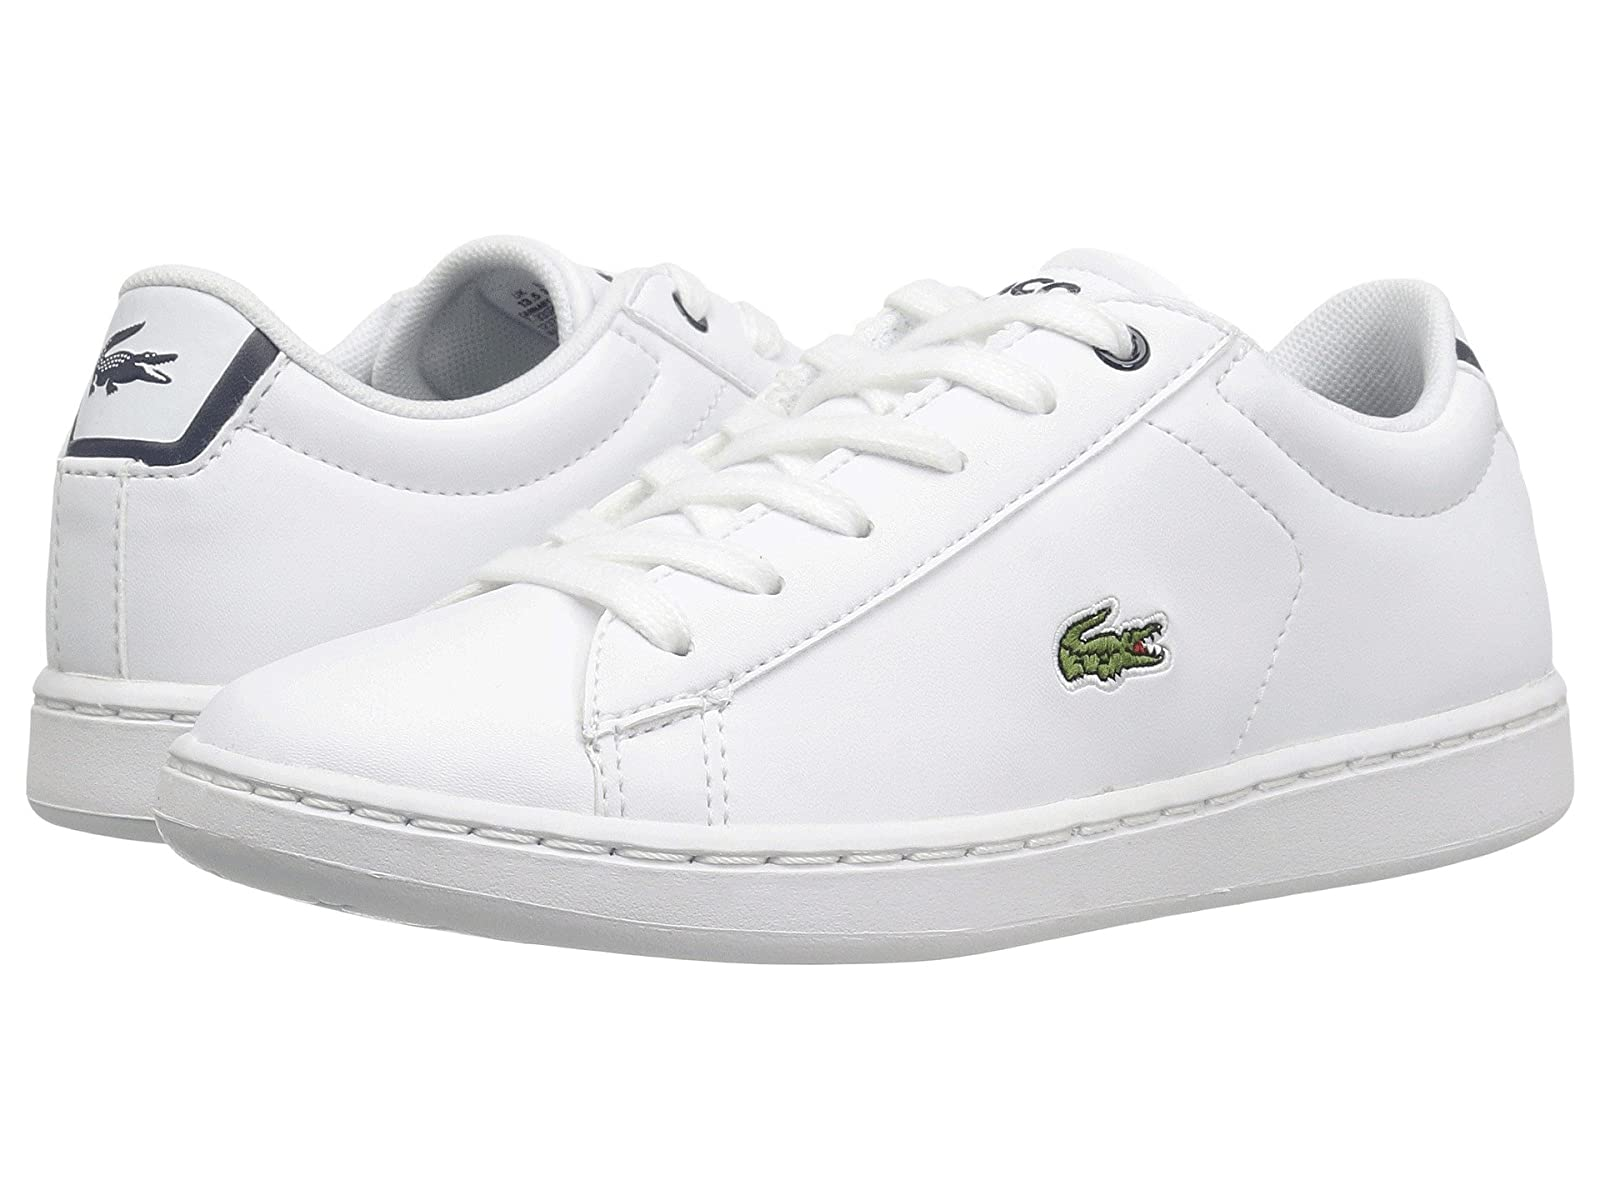 Lacoste Kids Carnaby Evo (Little Kid)Atmospheric grades have affordable shoes